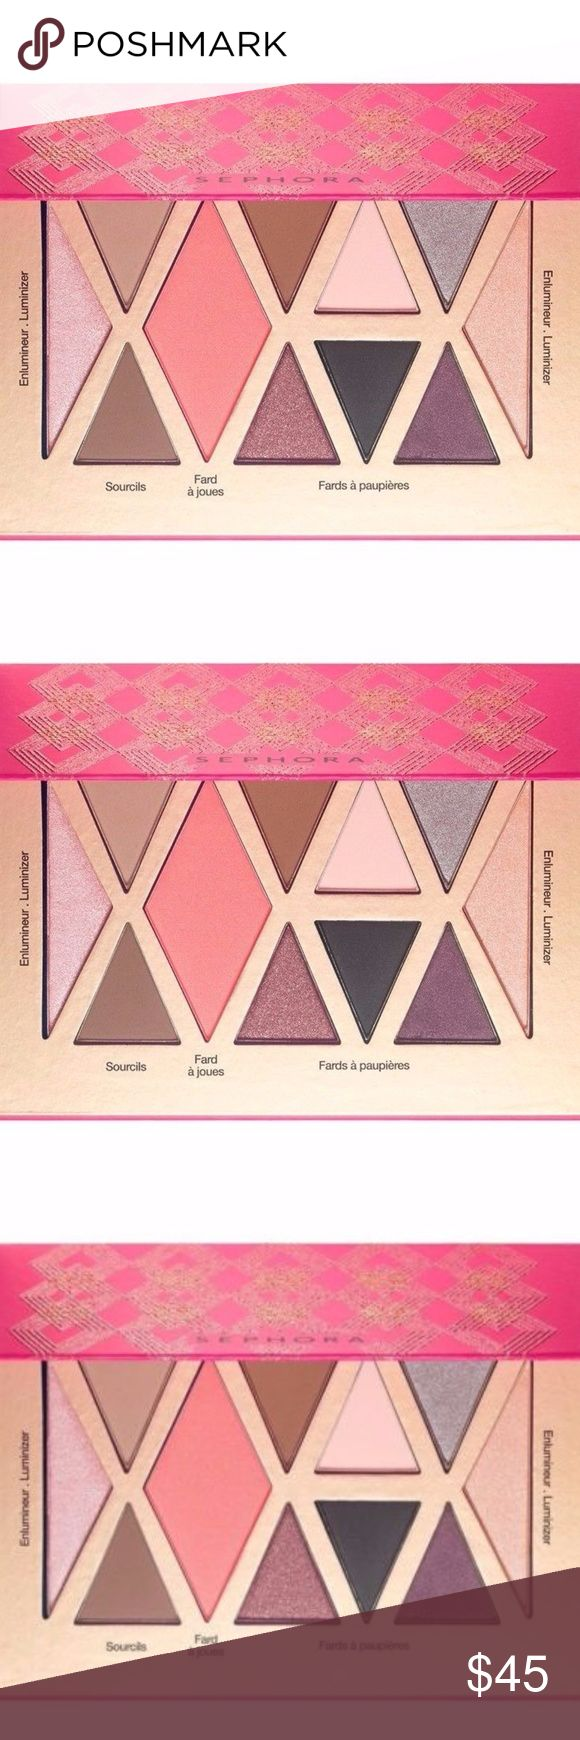 Enchanting Eye Brow Shadow Powder Palette Blush Brand New! Factory Sealed!  8 pearly and matte eyeshadow tints, including 2 shimmer highlight  2 eye brow powders  1 perfect blush Sephora Makeup Eyeshadow